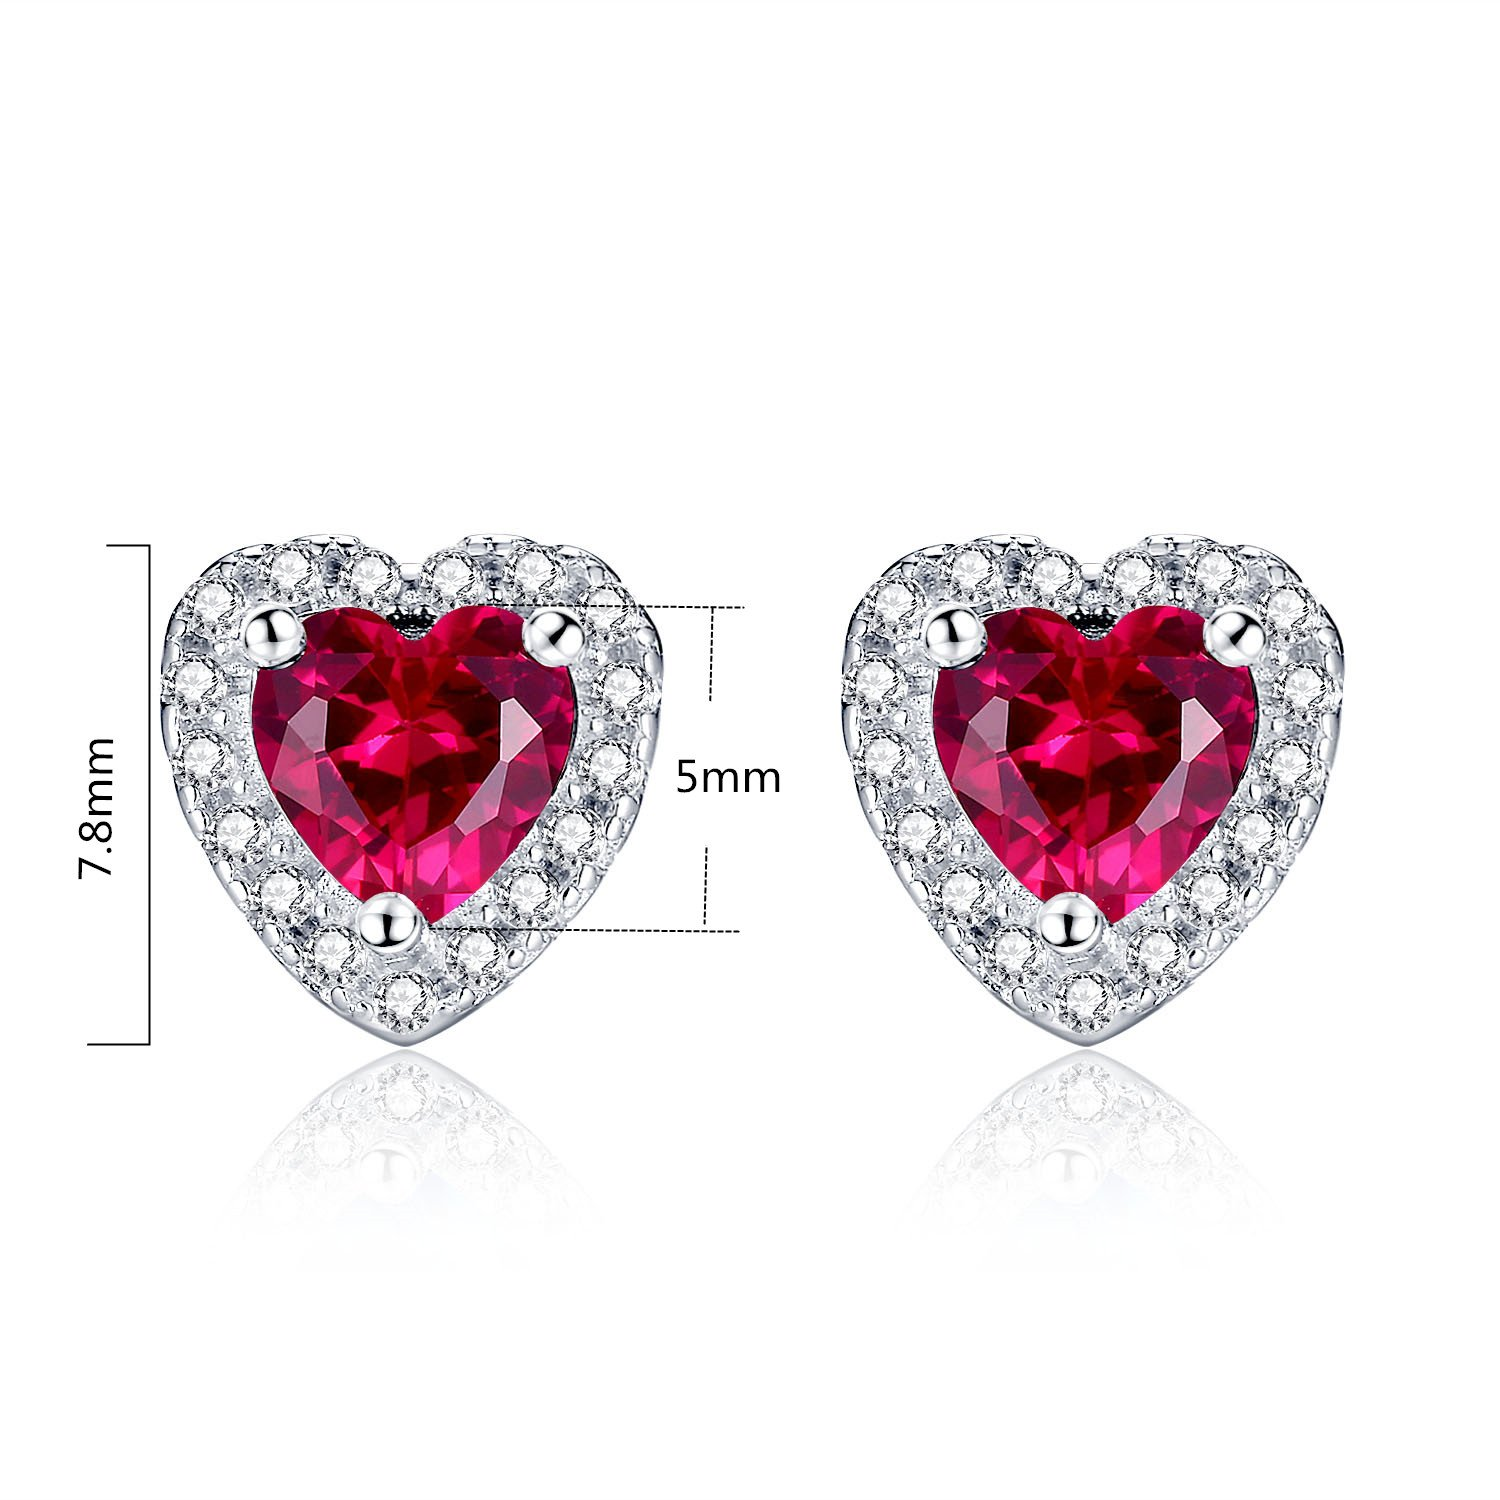 Mabella Sterling Silver Heart Jewelry Sets 7 CTW Simulated Ruby Pendant Earrings Set, Gifts for women by MABELLA (Image #4)